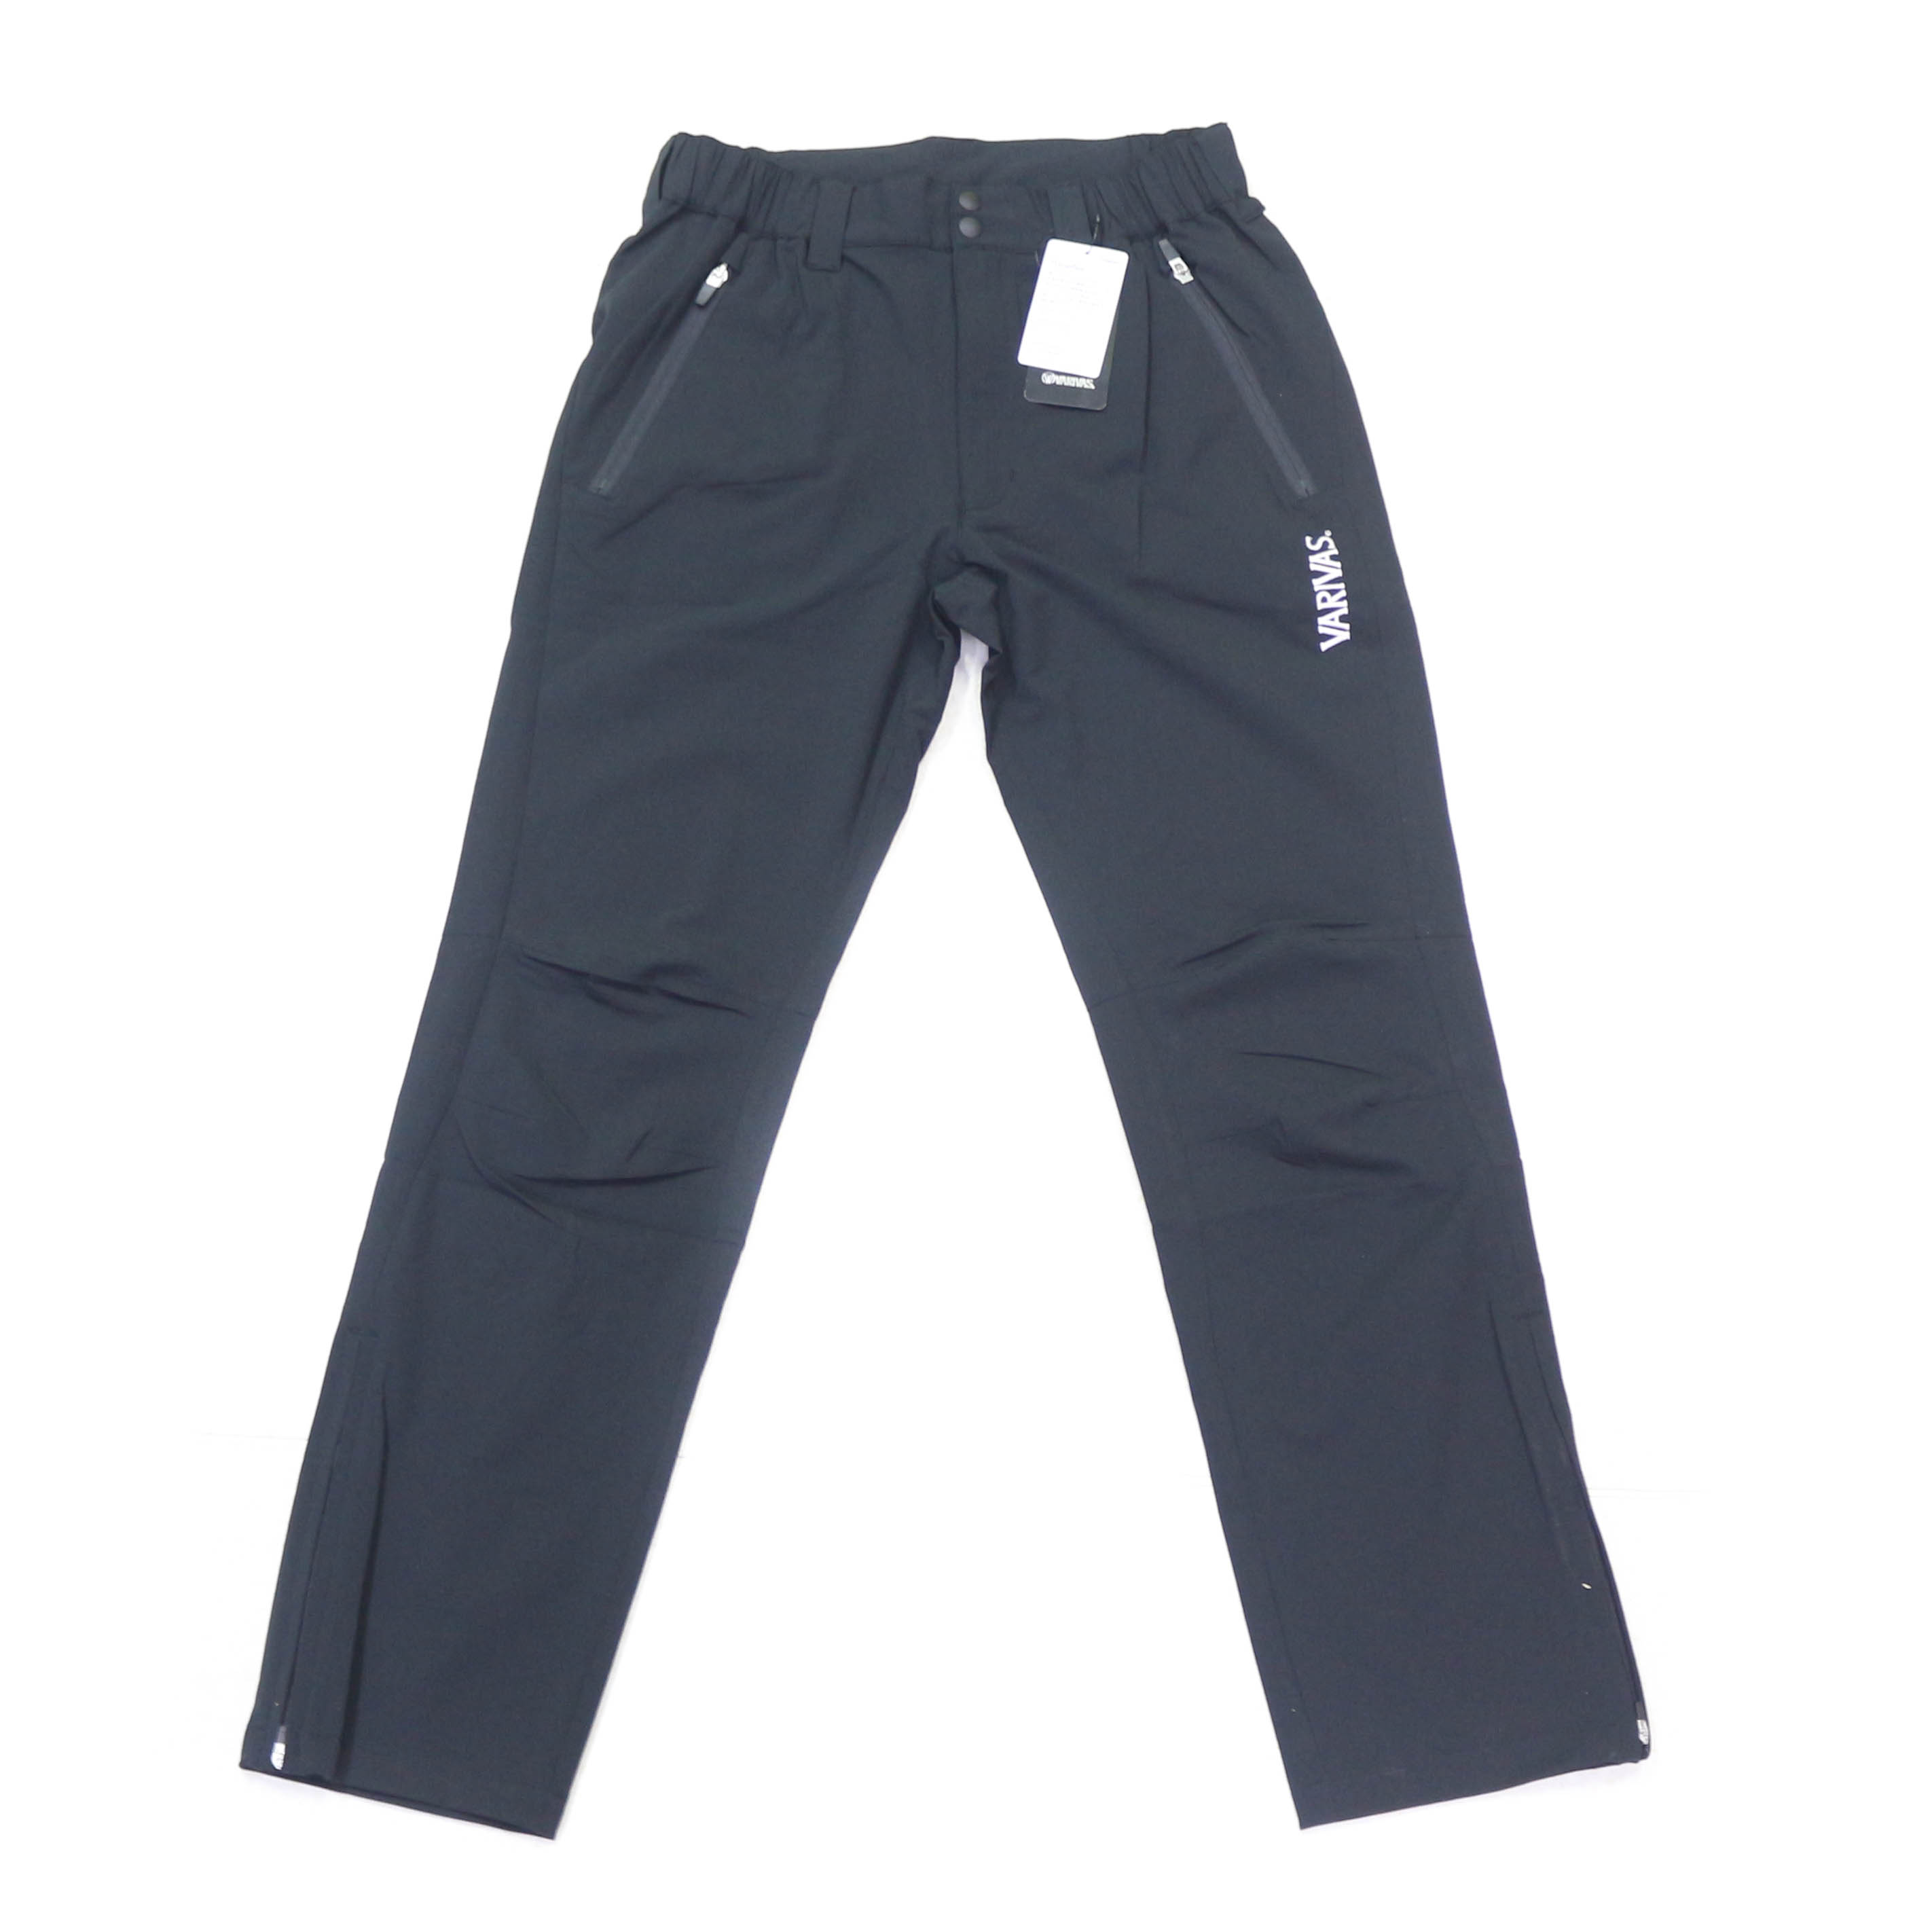 Varivas VASS-05 Fishing Pants Black Size M (1341)